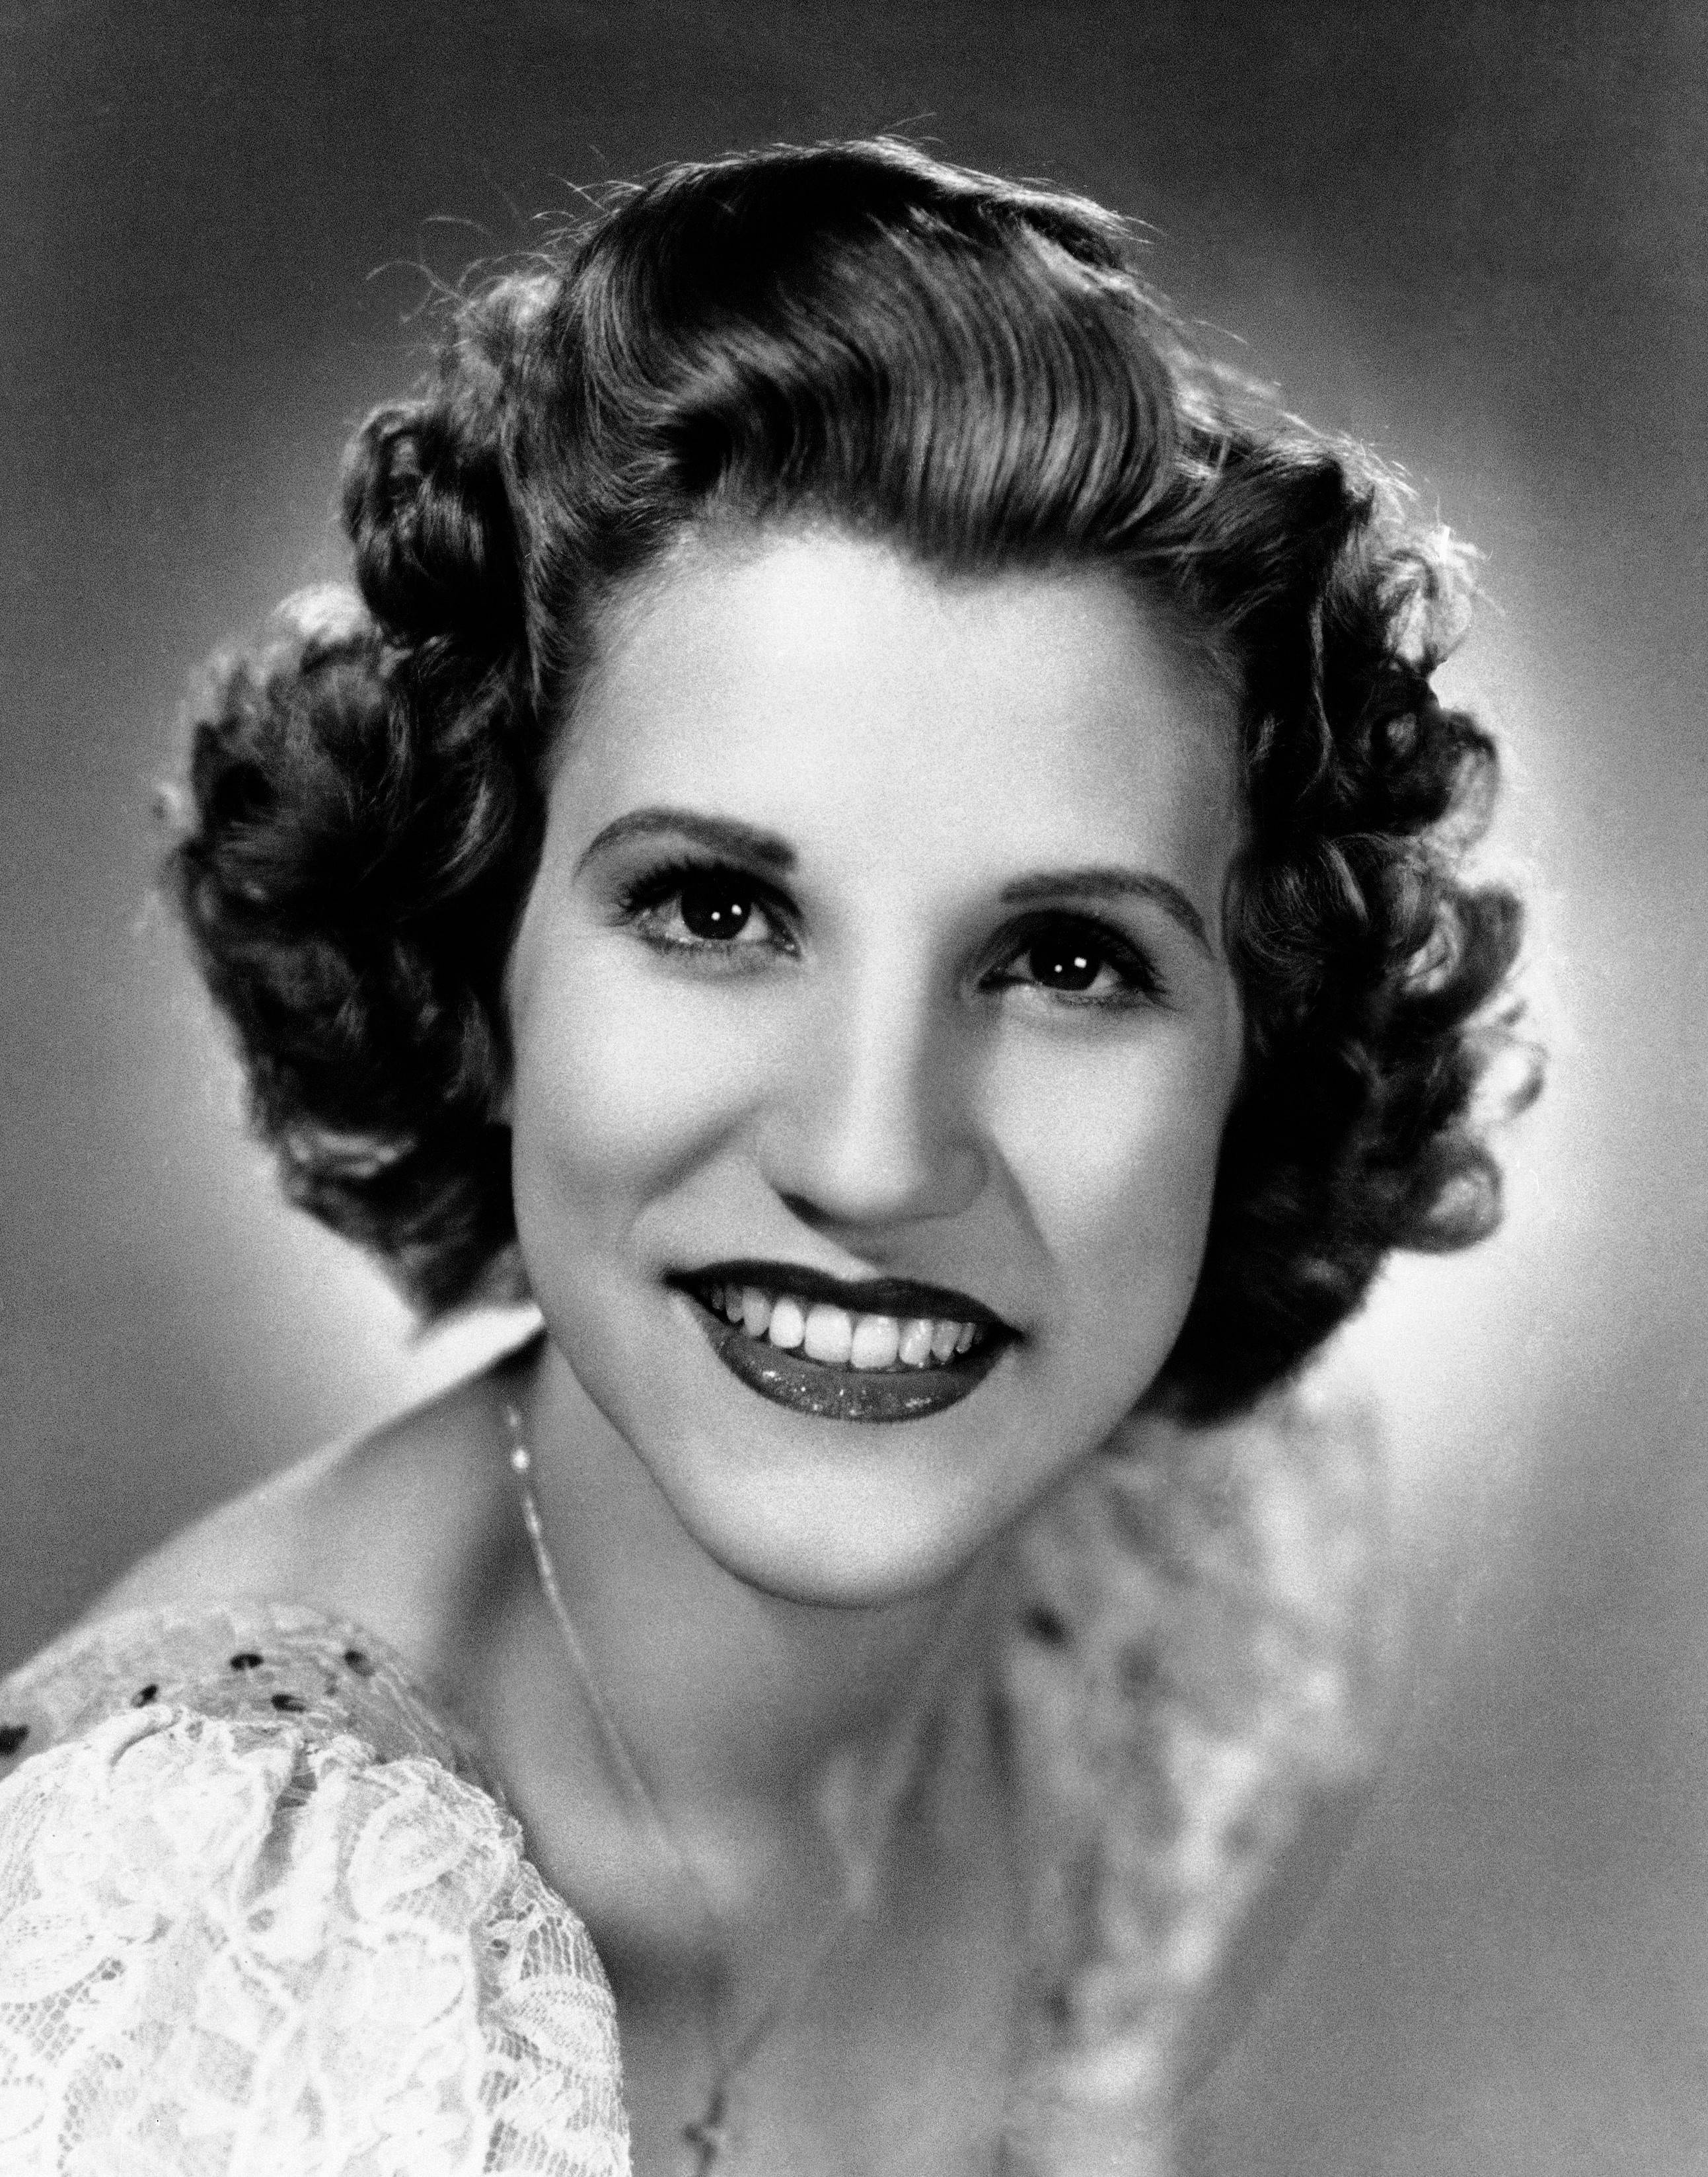 Patty Andrews, the last survivor of the three singing Andrews sisters, died last year at the age of 94. Two local shows pay tribute to the sisters.